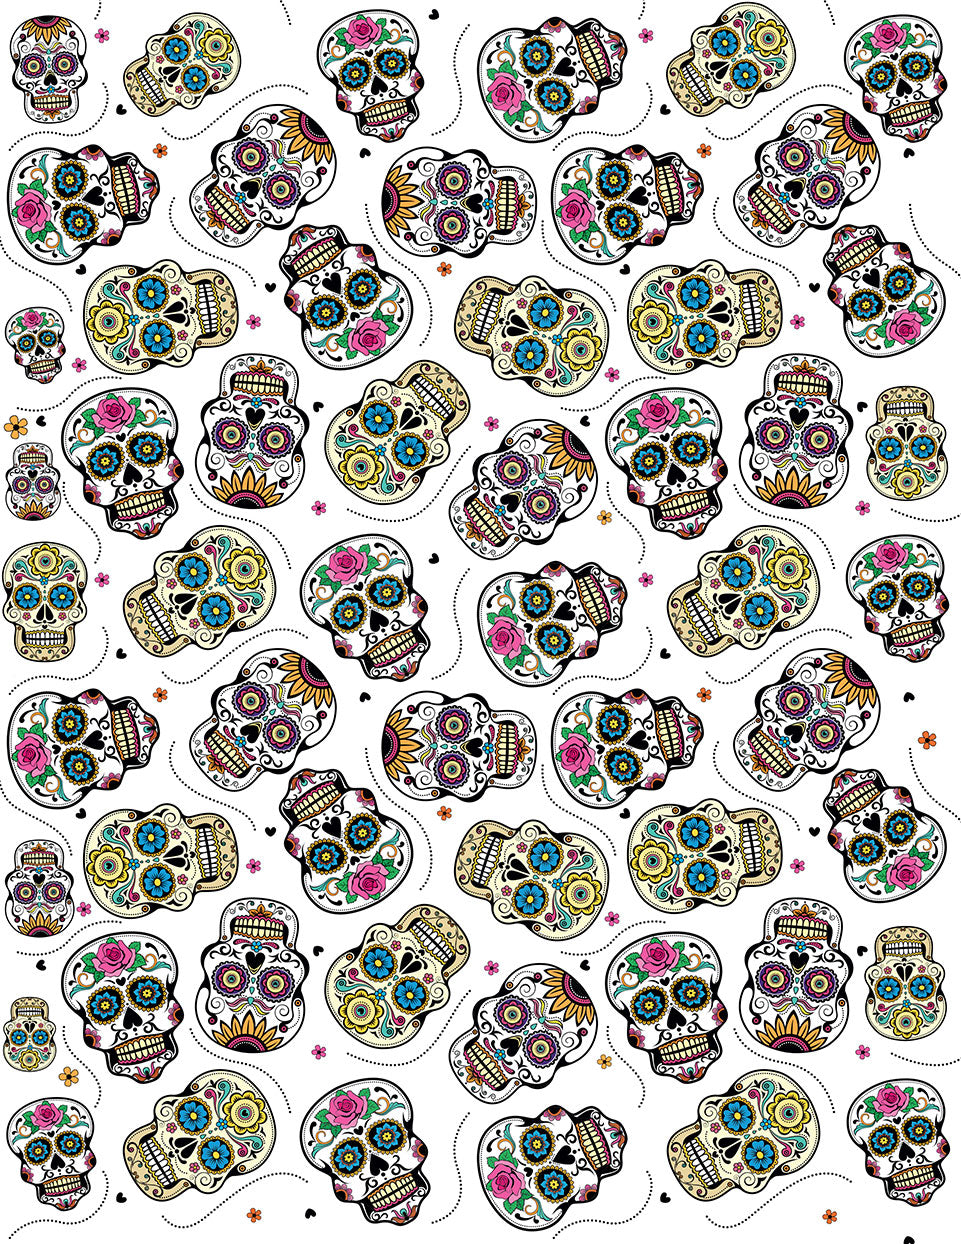 Overglaze decal - Sugar Skull